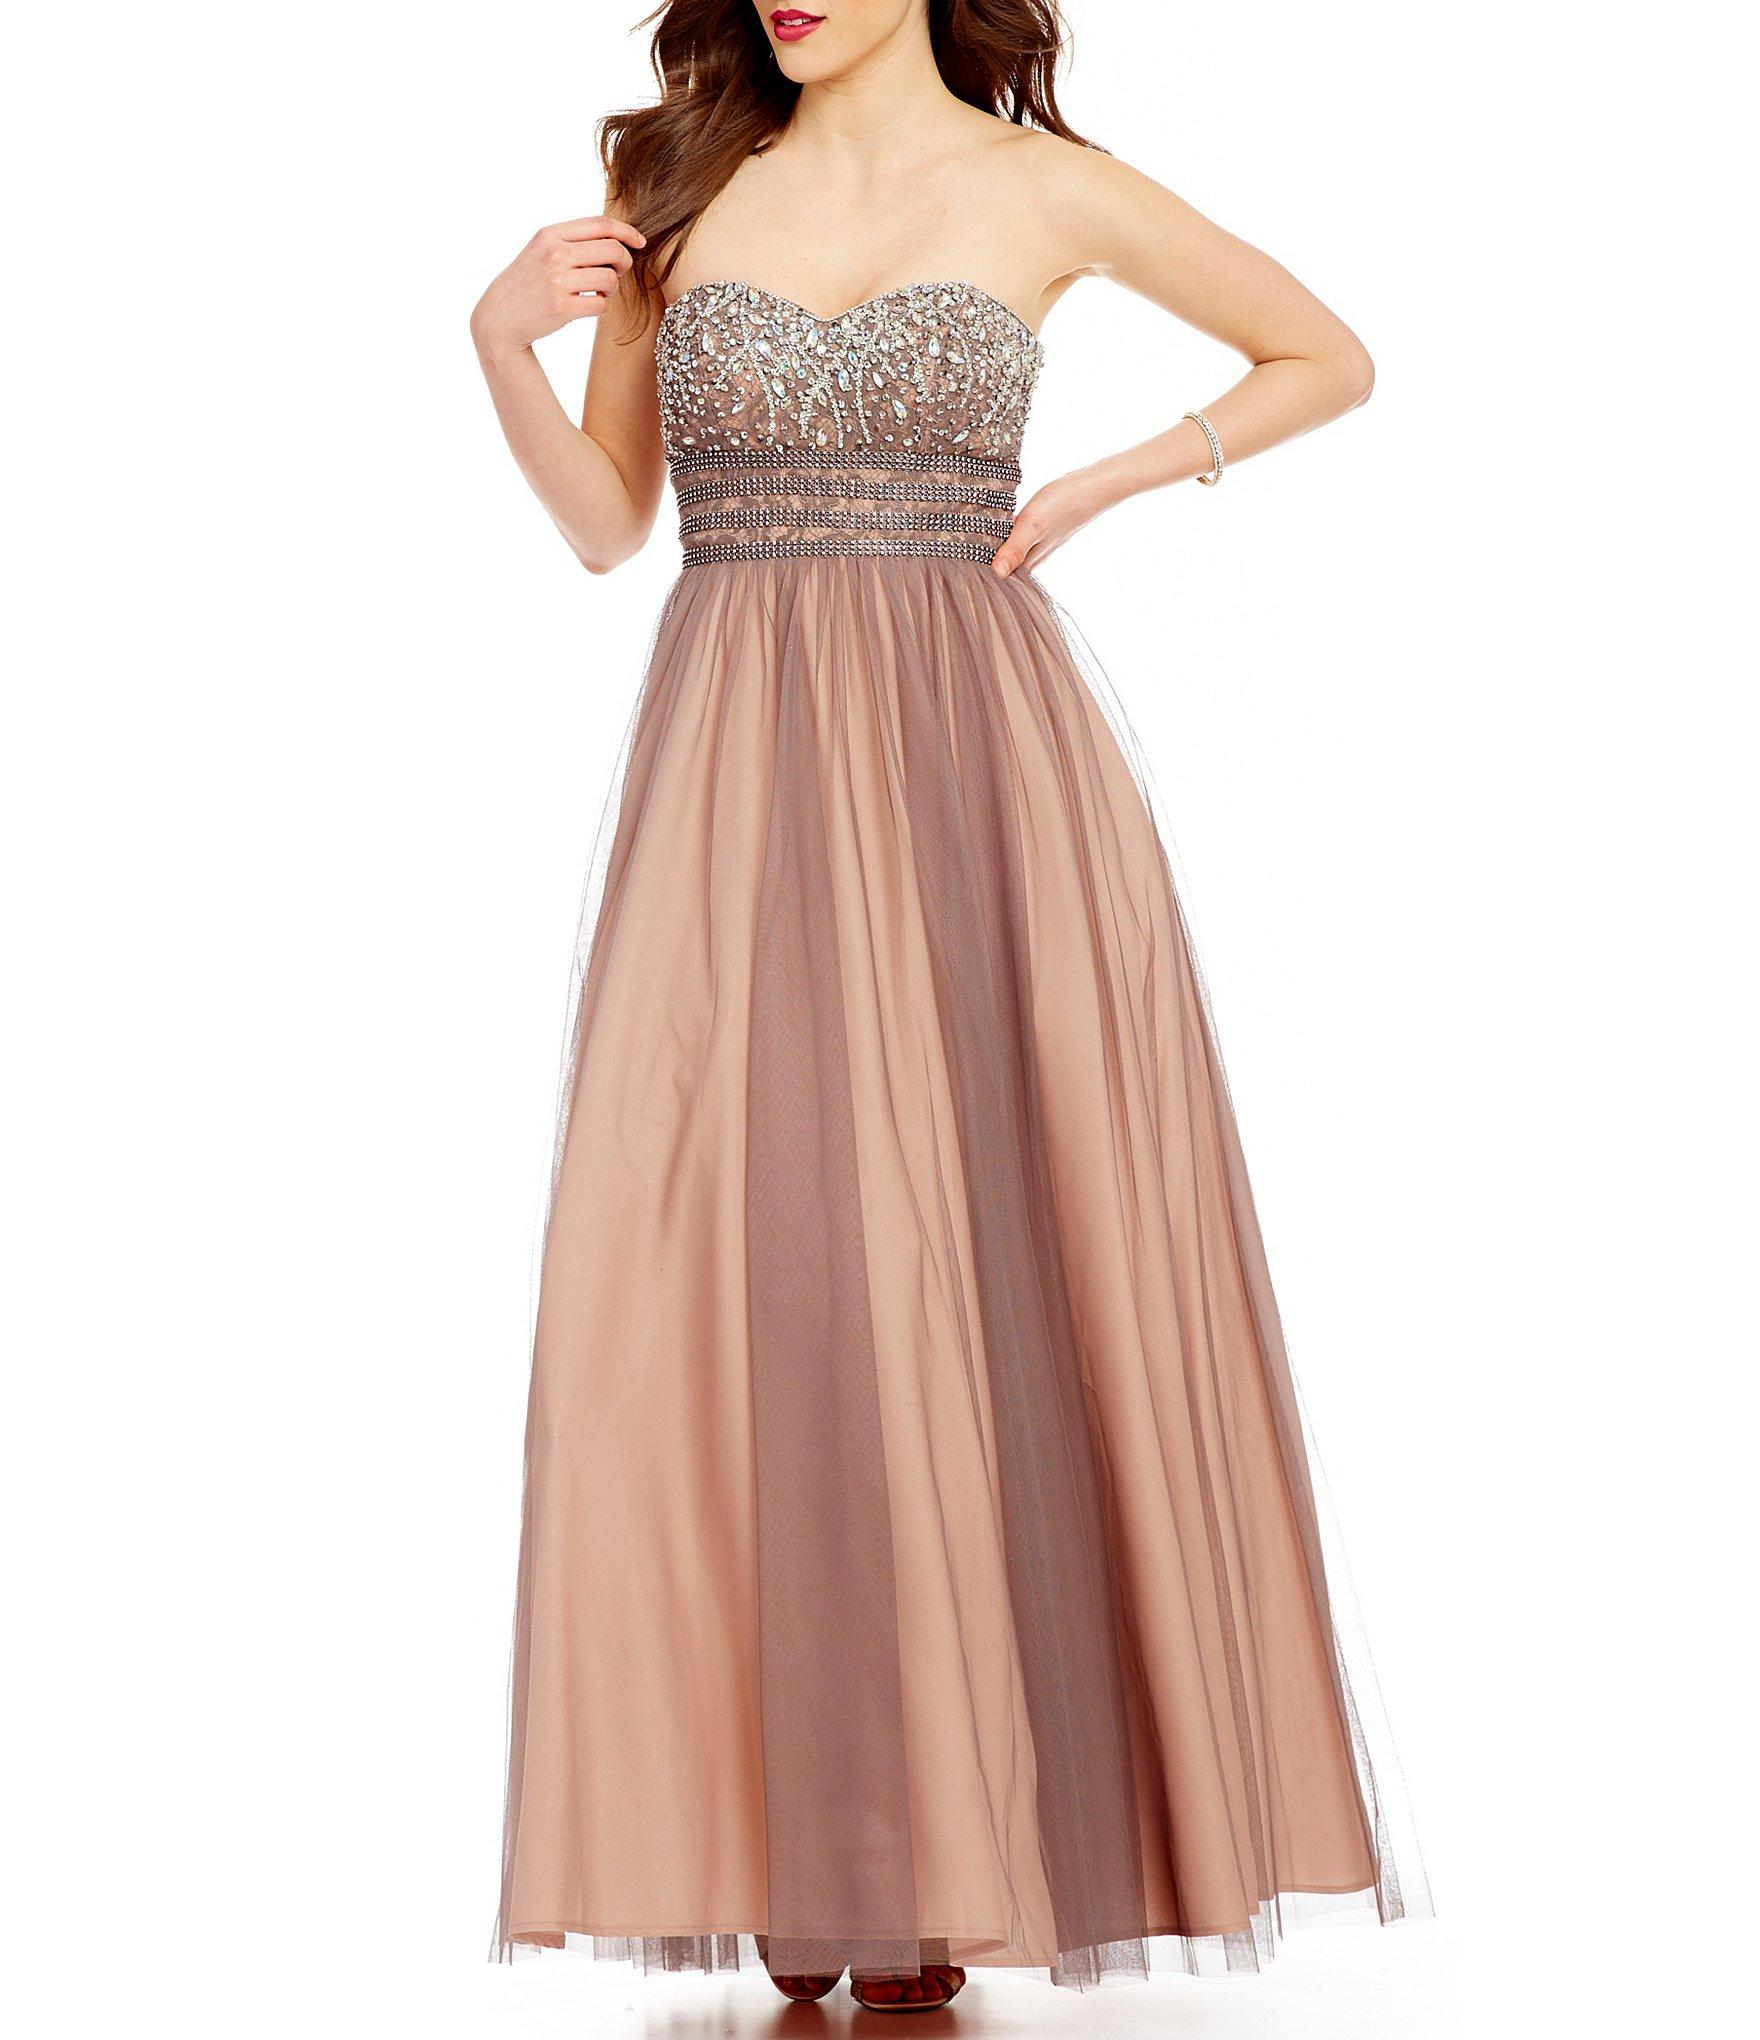 7c56a7b245 Blondie Nites Two-tone Beaded Strapless Sweetheart Neck Ball Gown - Lyst